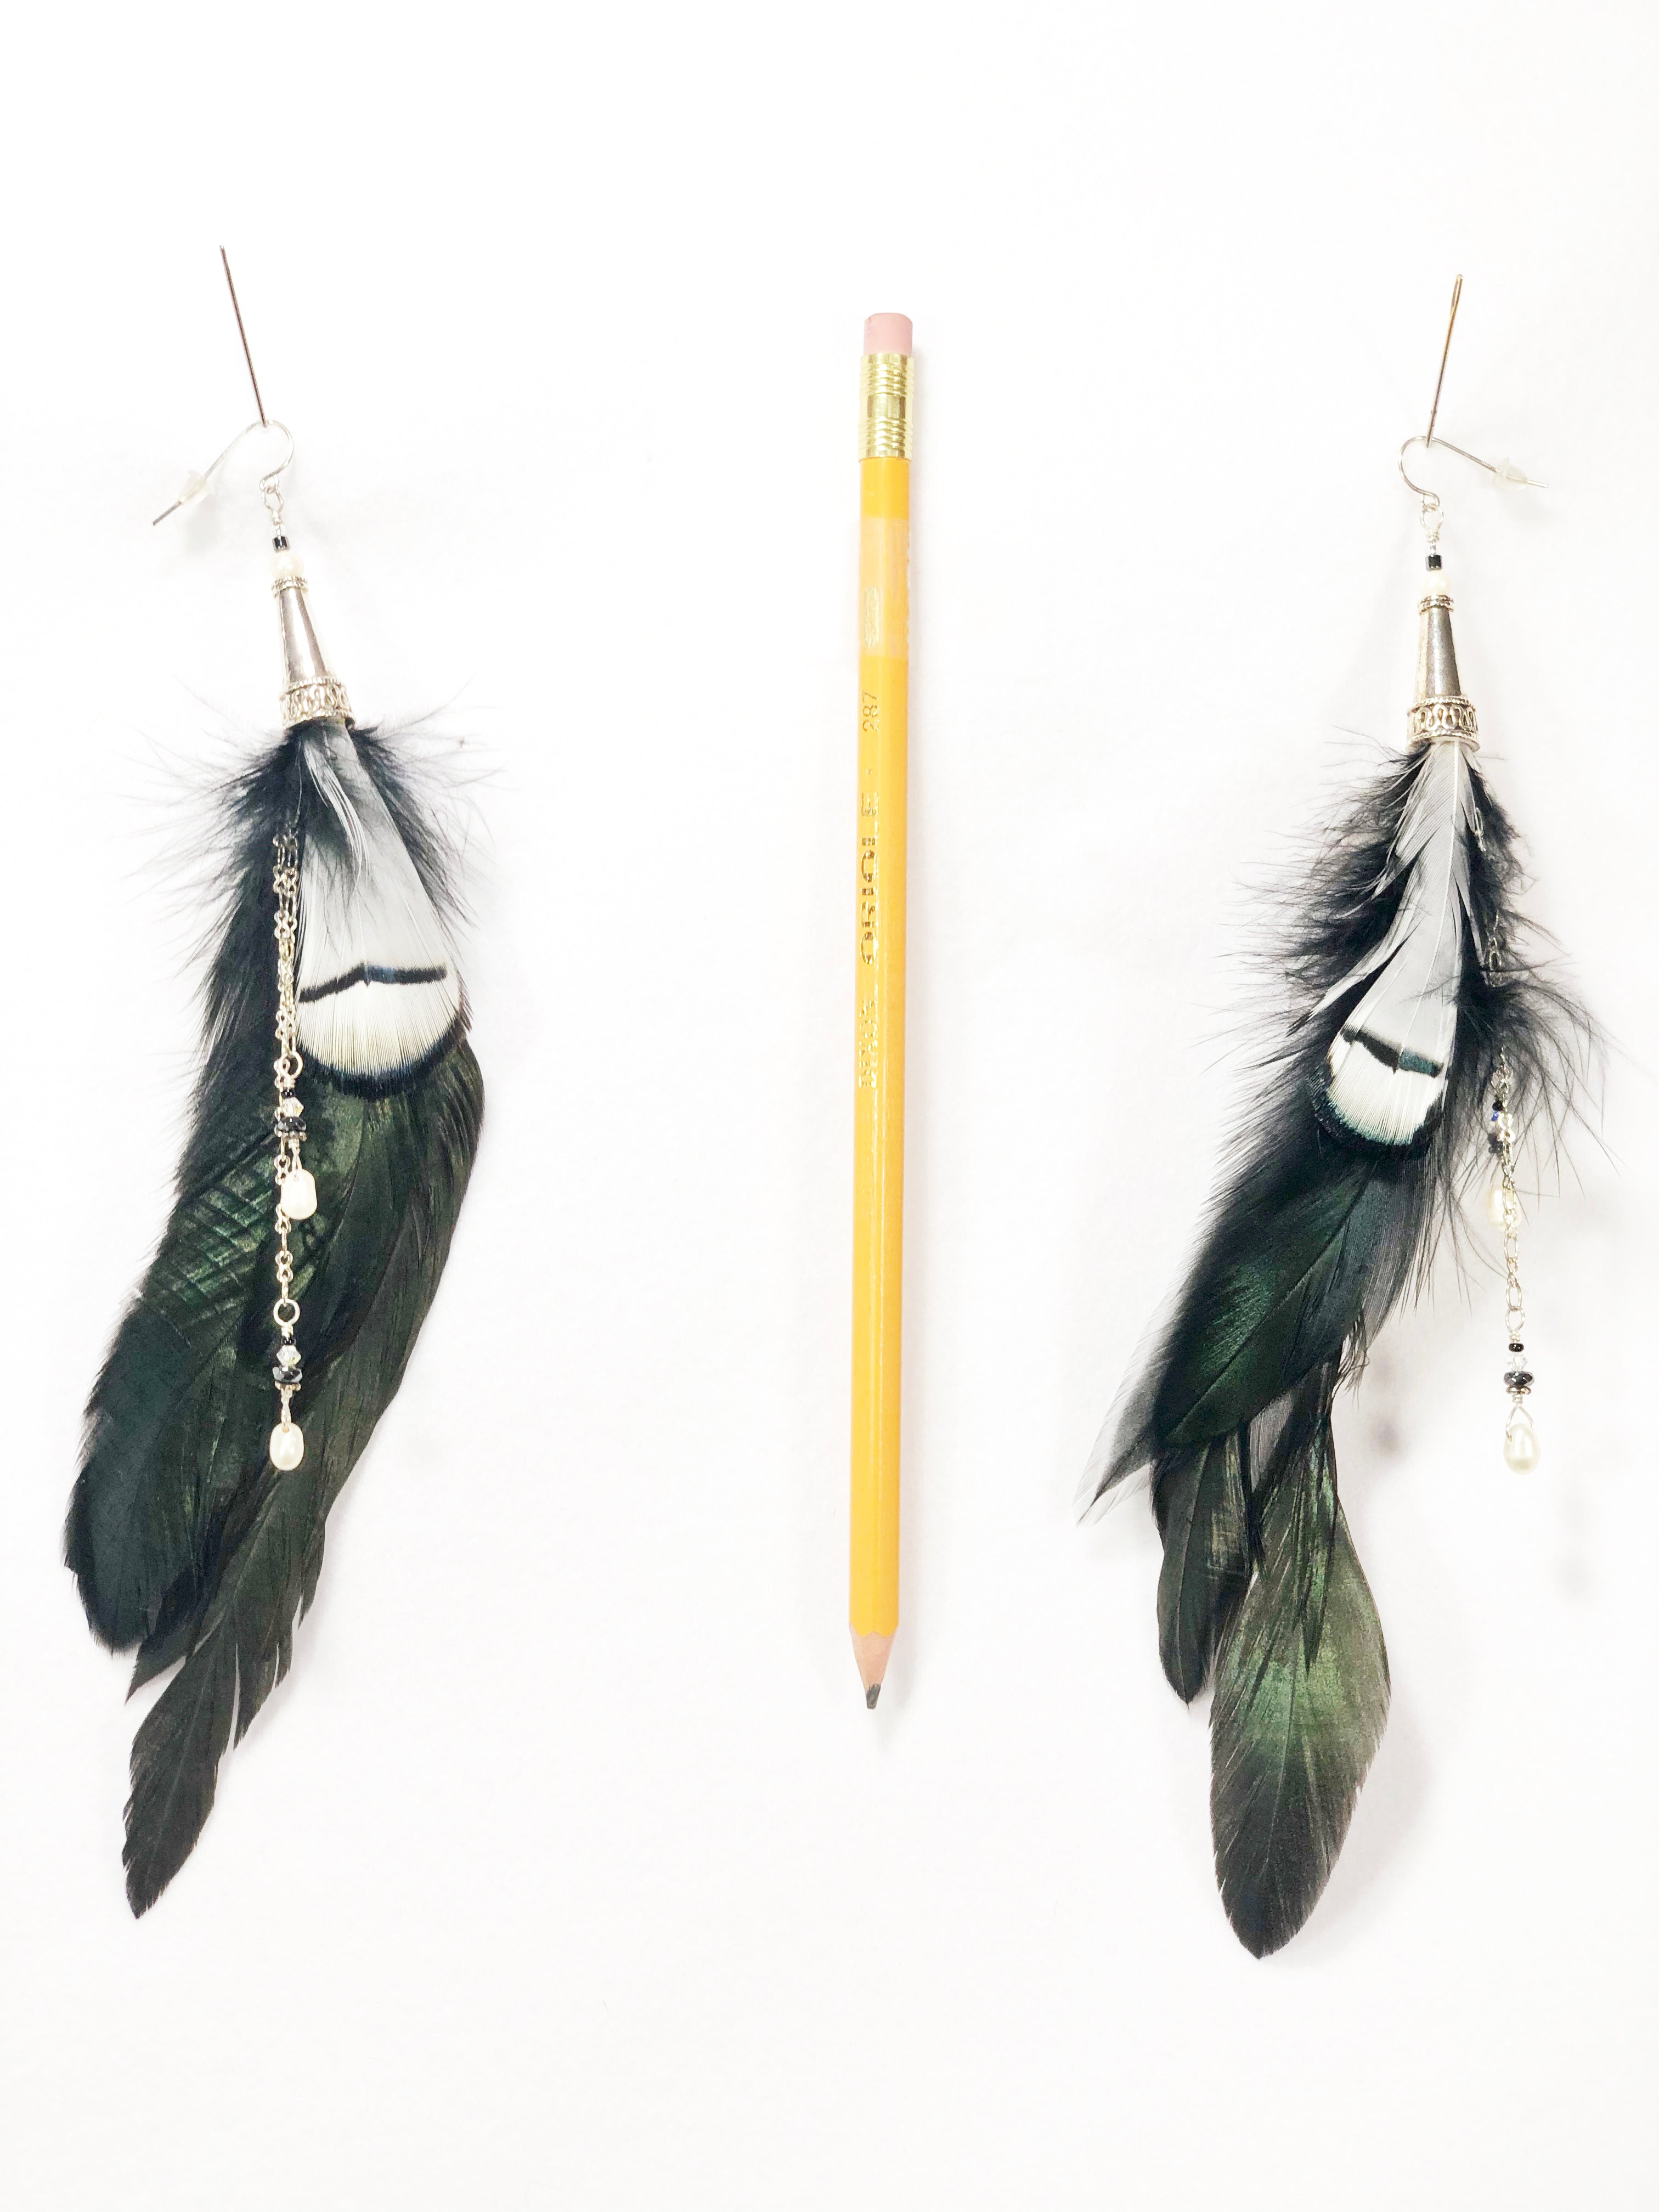 ER05 Pair of feather earrings with black and white feathers, pearls, and silver accents.